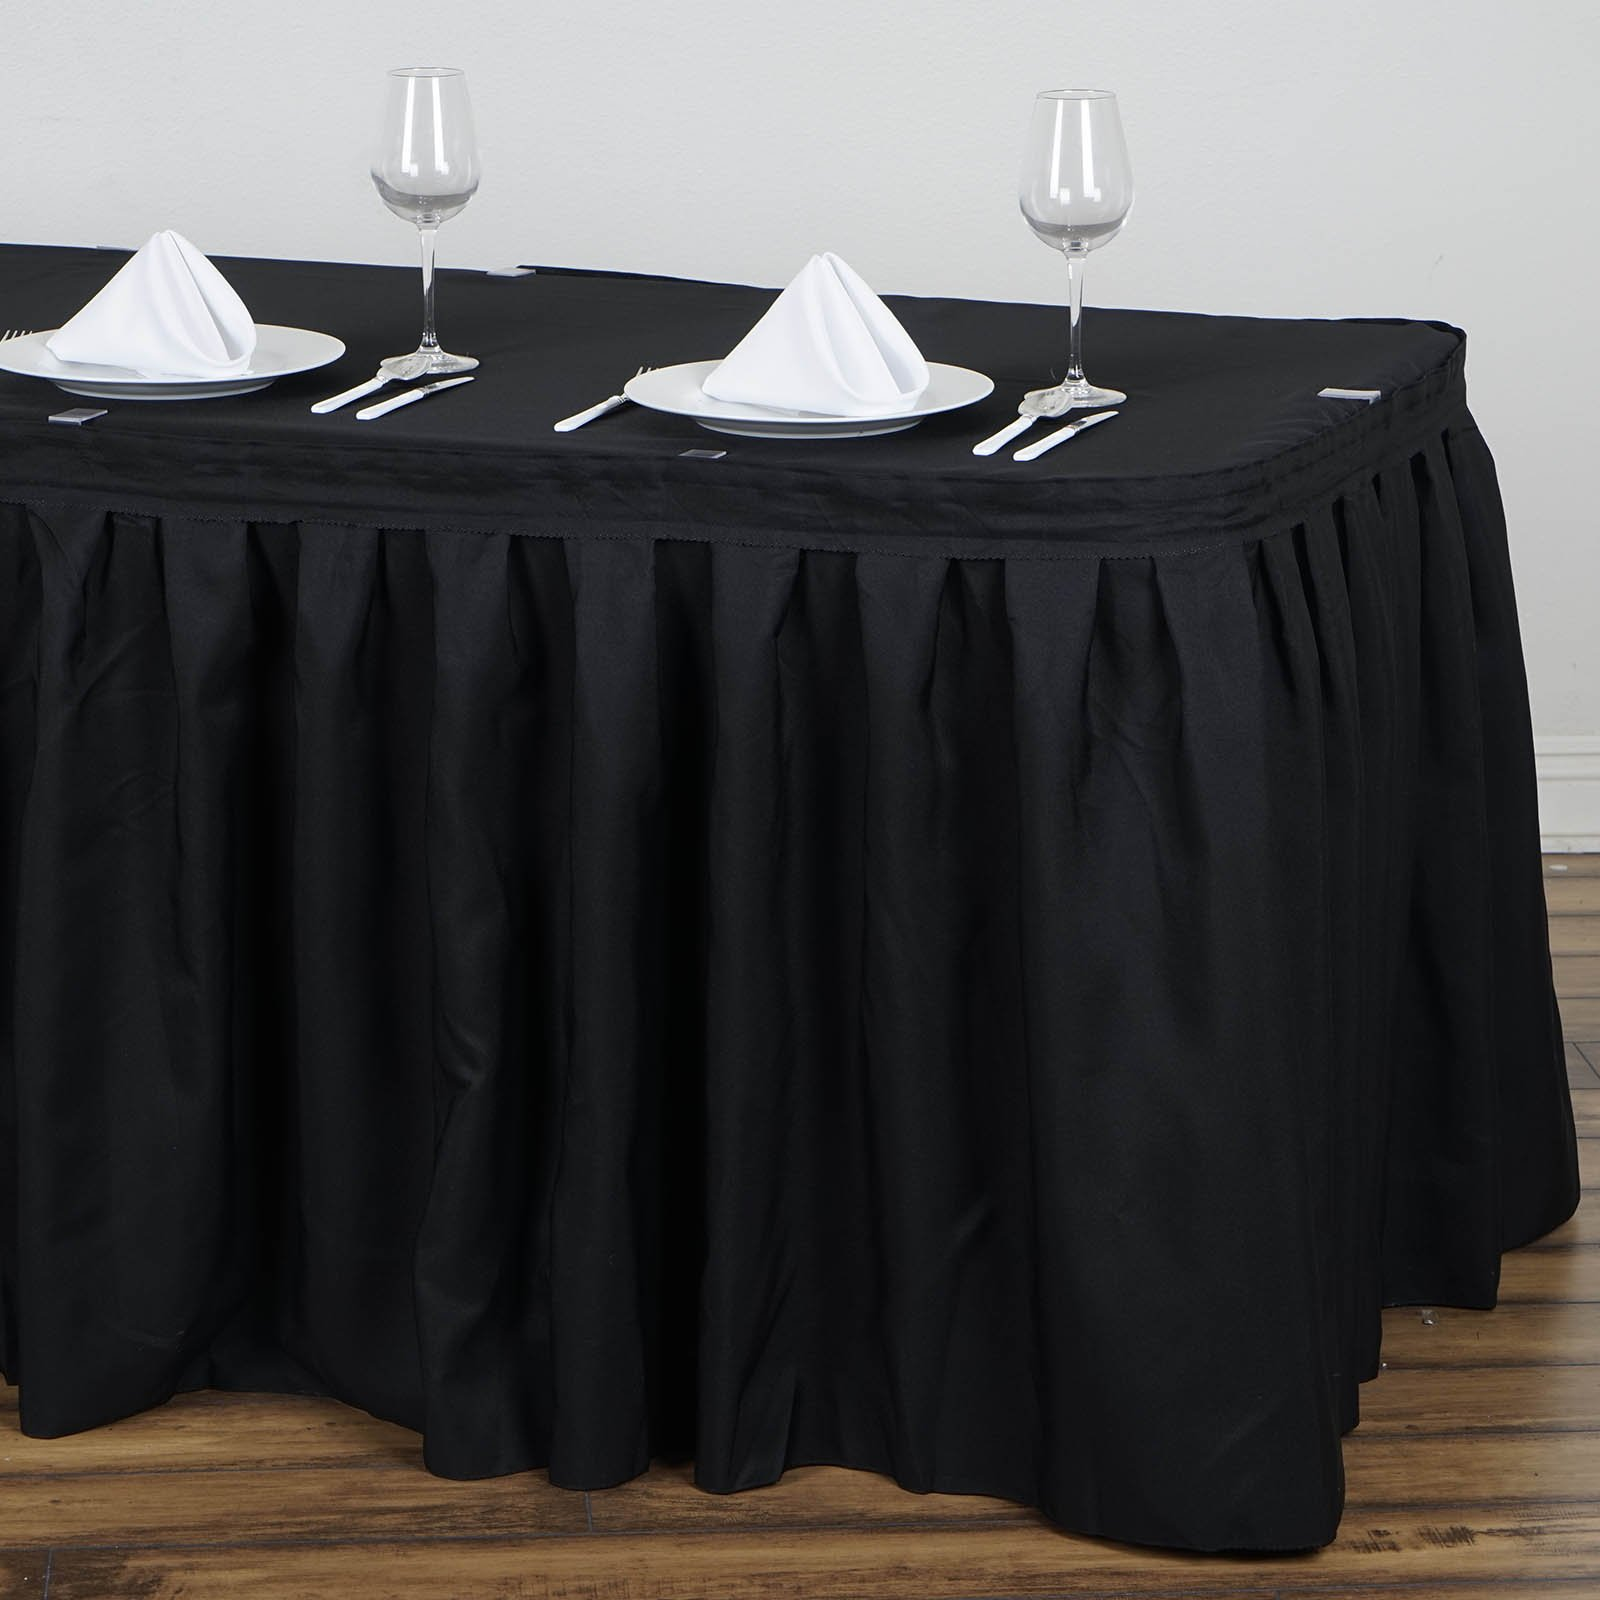 BalsaCircle 21 feet x 29-Inch Black Polyester Banquet Table Skirt Linens Wedding Party Events Decorations Kitchen Dining Catering by BalsaCircle (Image #3)